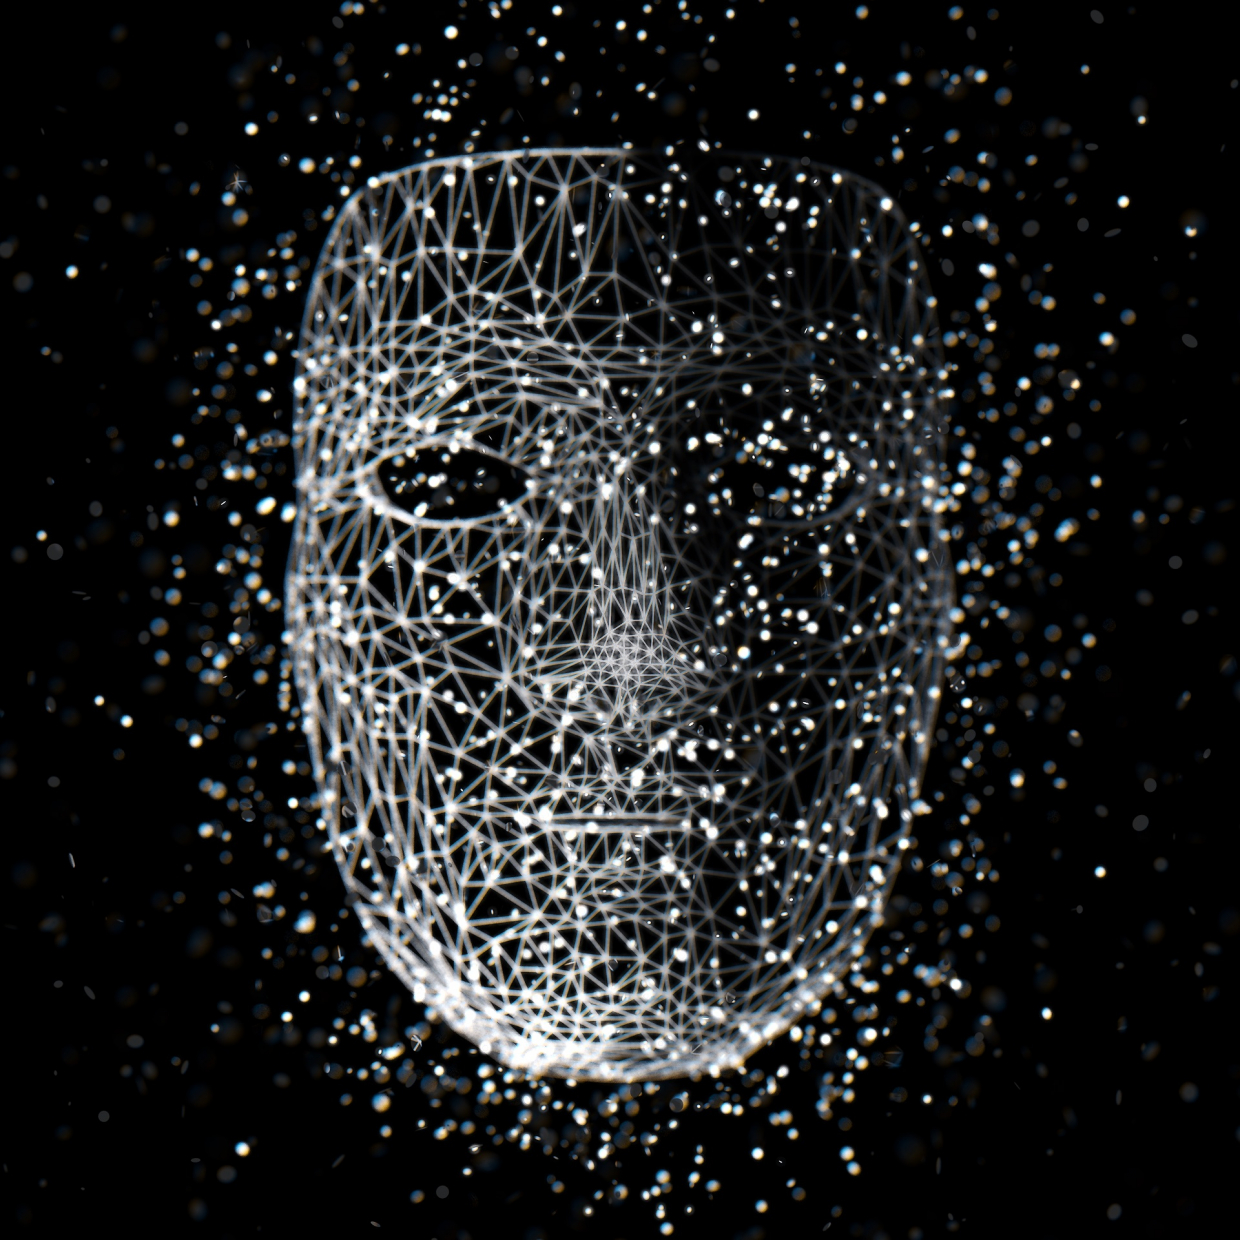 Atomic mask in Cinema 4d Other image